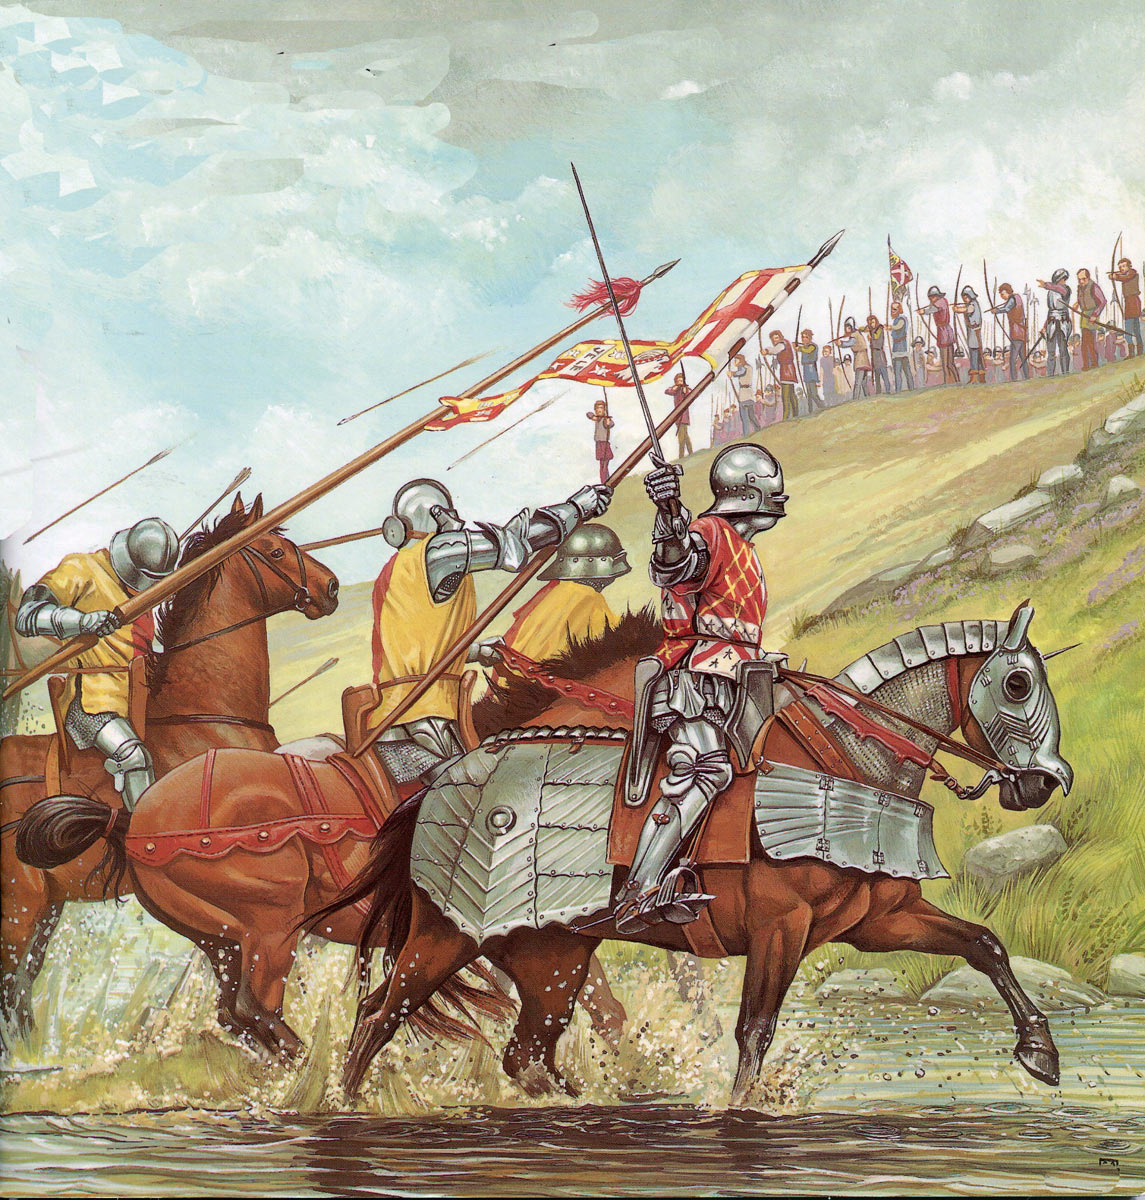 Battle of Blore Heath, fought on 23rd September 1459 in the Wars of the Roses